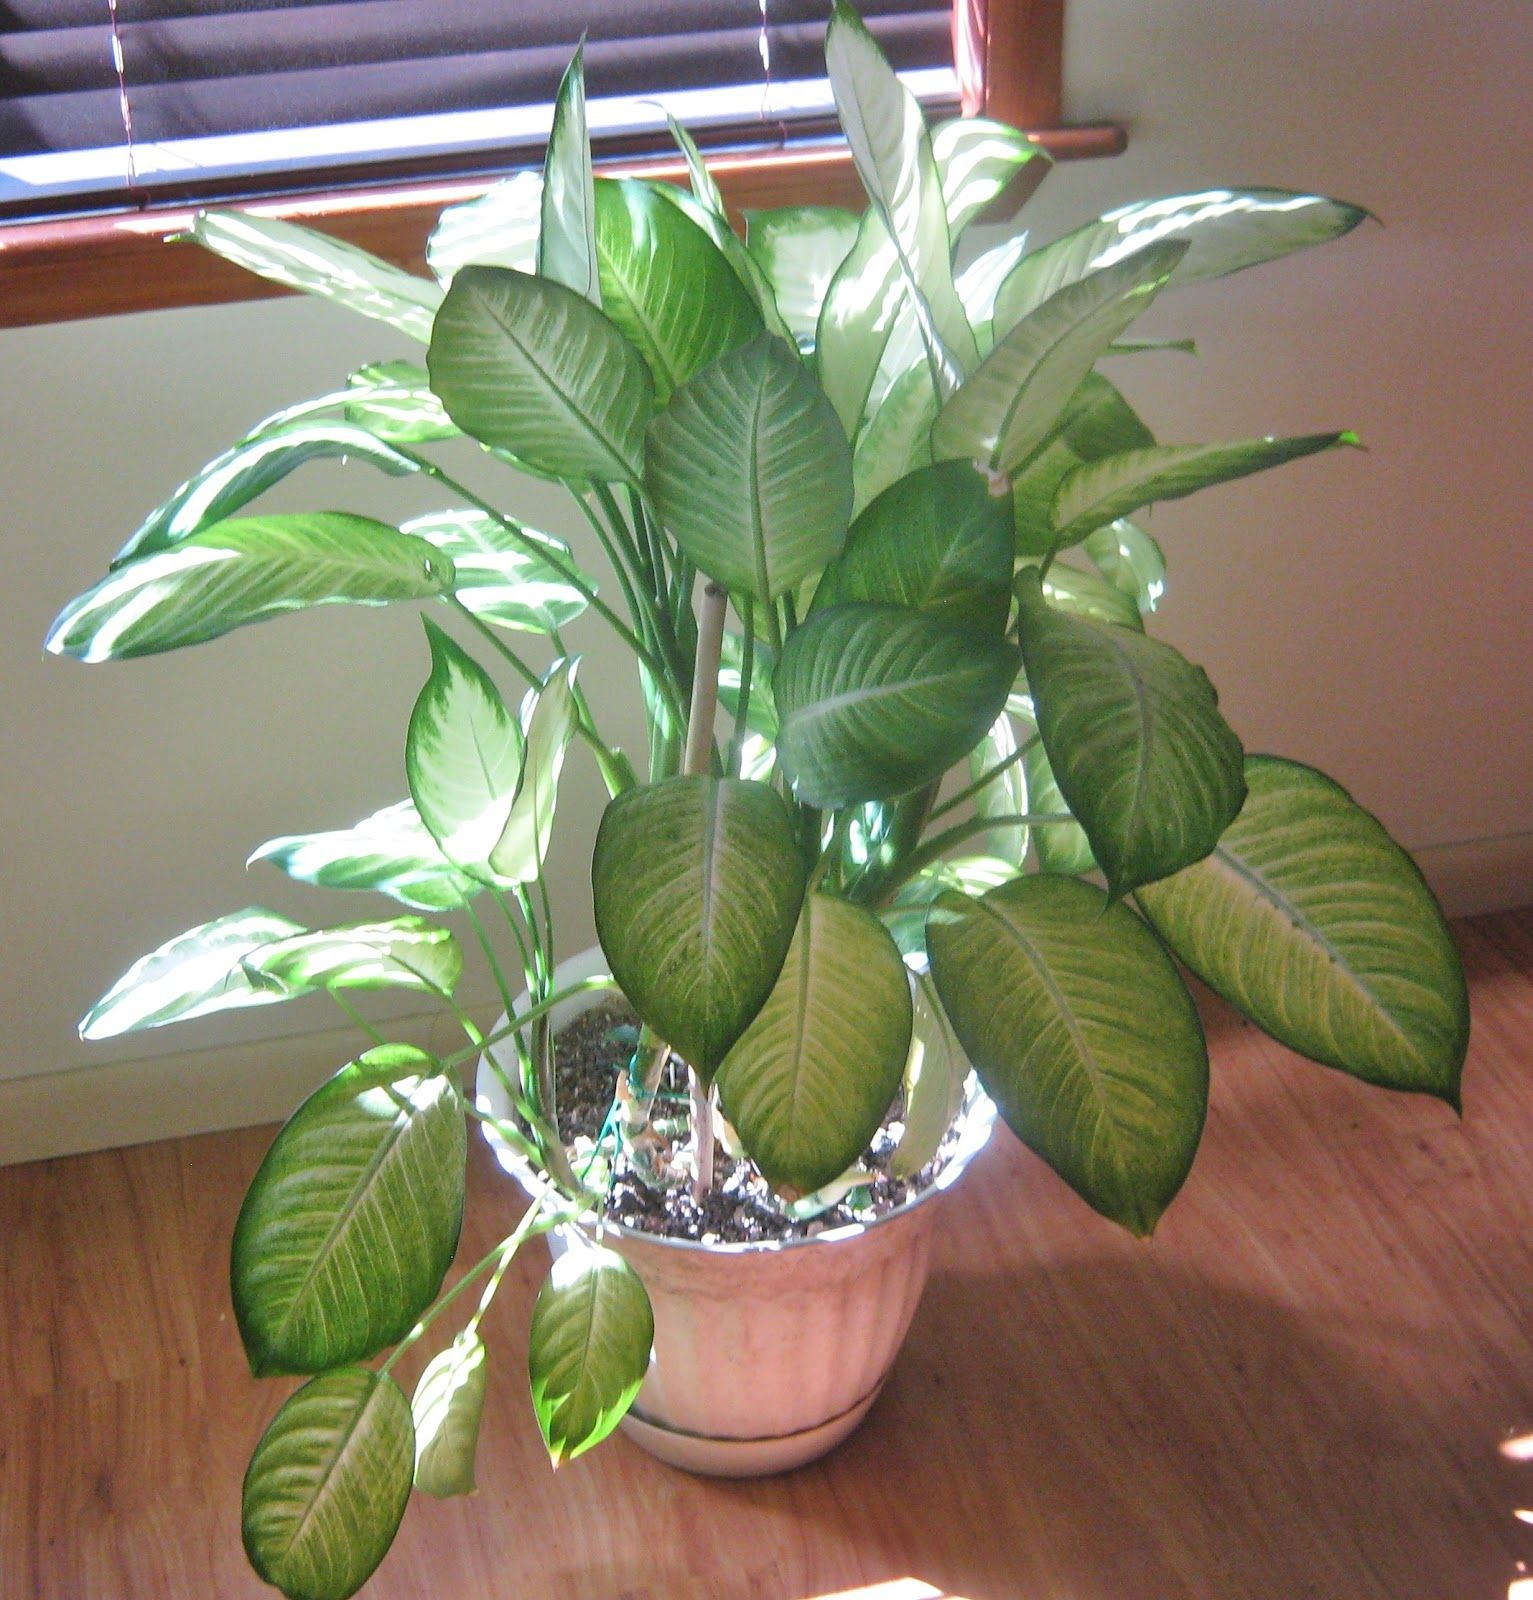 Plant In House Dumb Cane Highly Toxic House Plant Indoor Jungle